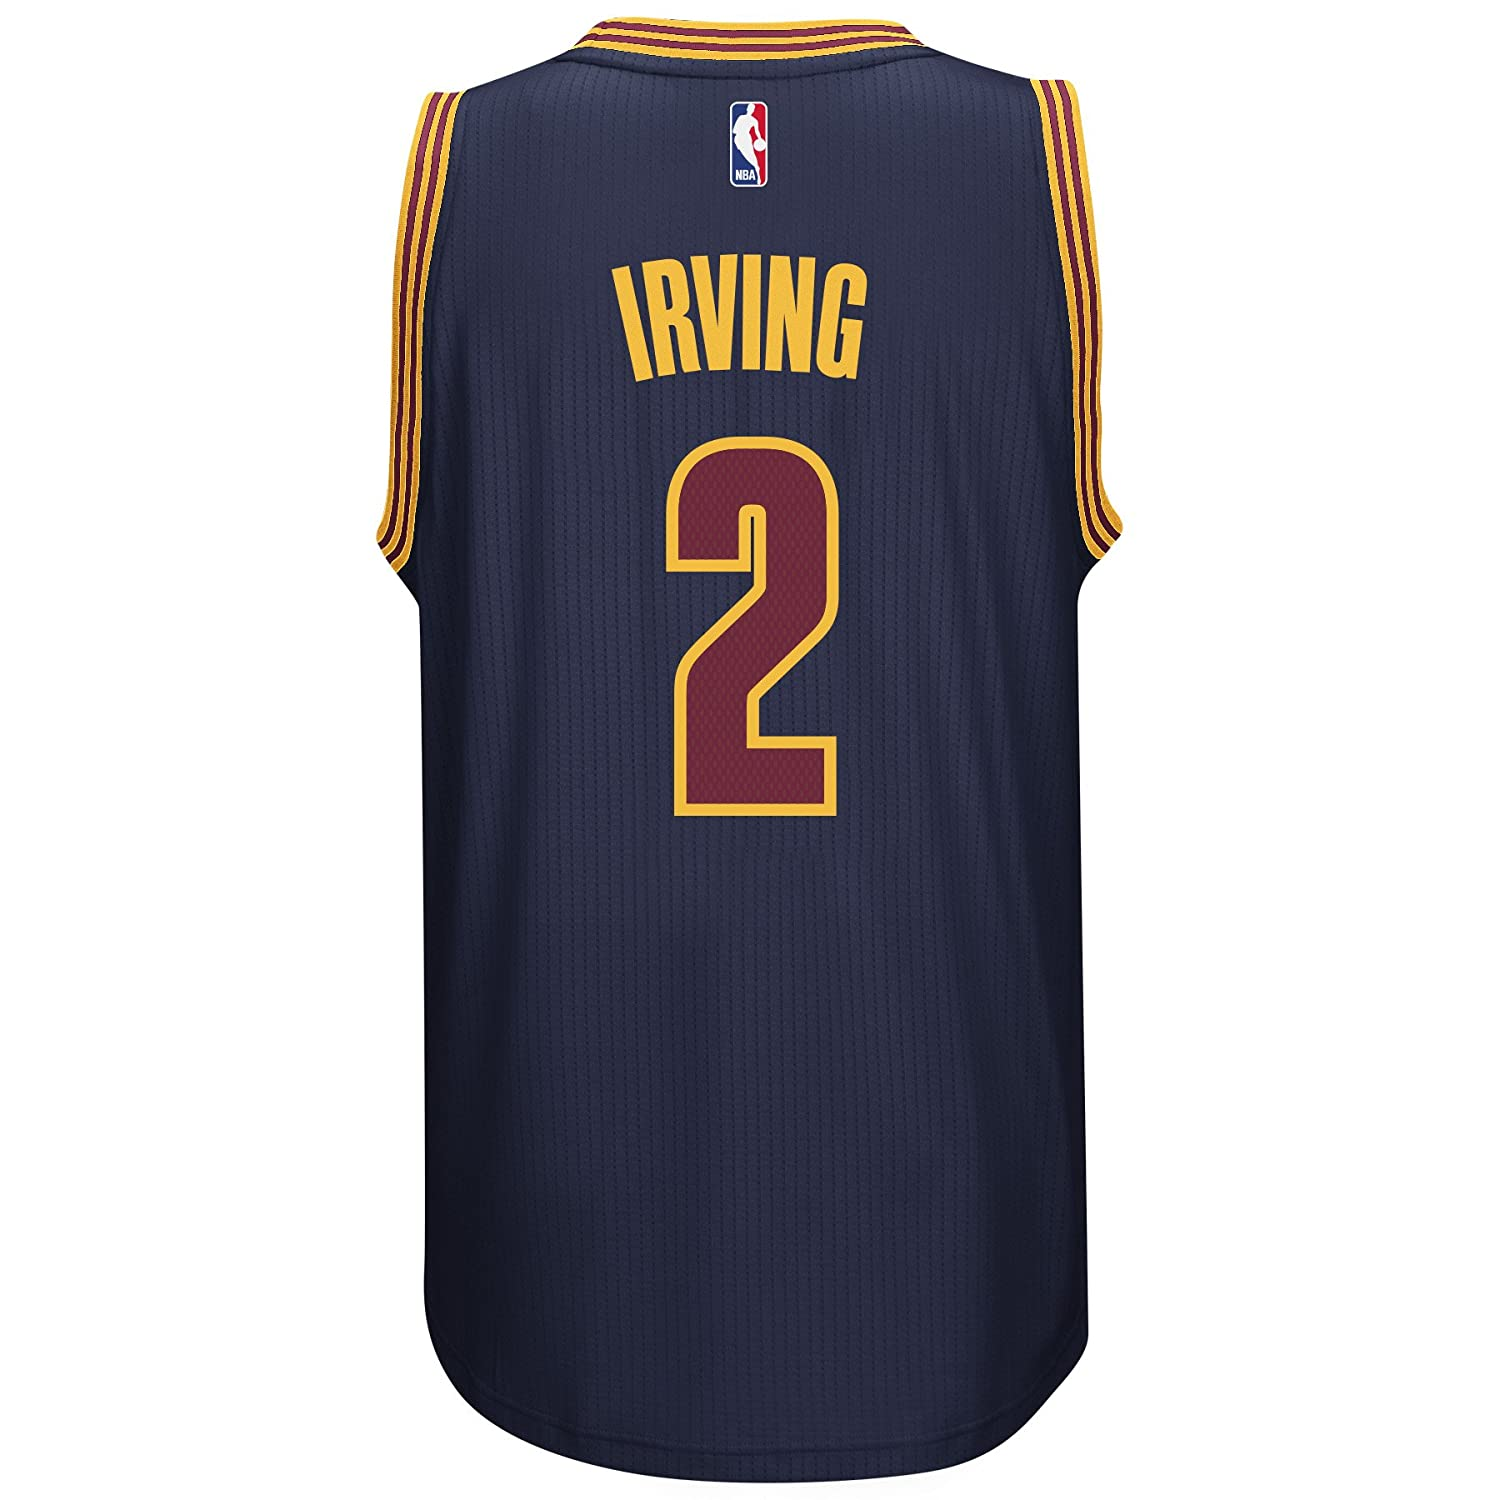 ed7903759e25 ... czech amazon adidas kyrie irving mens navy cleveland cavaliers swingman  jersey sports outdoors f636a c6d2a